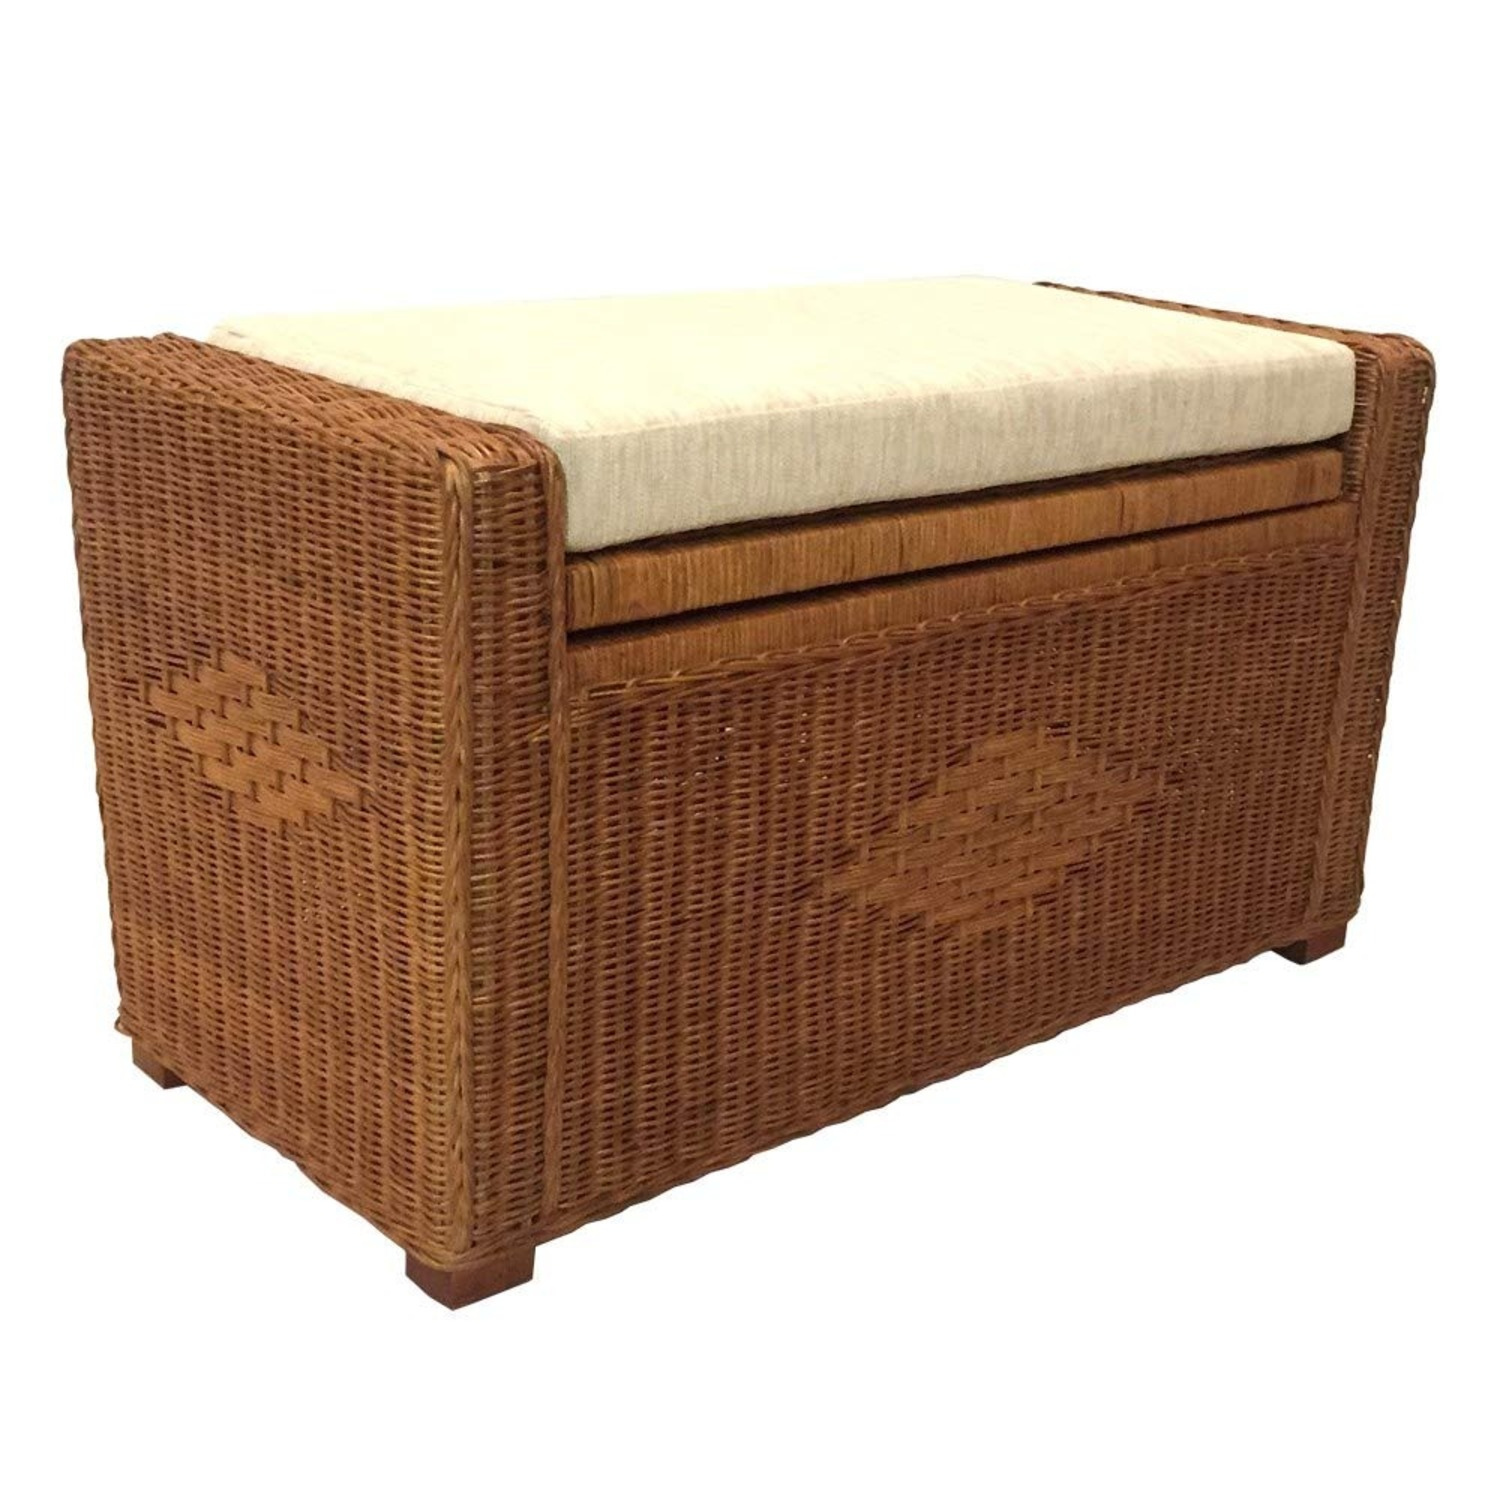 Adam Light Brown Rattan Chest Storage Ottoman - image-1